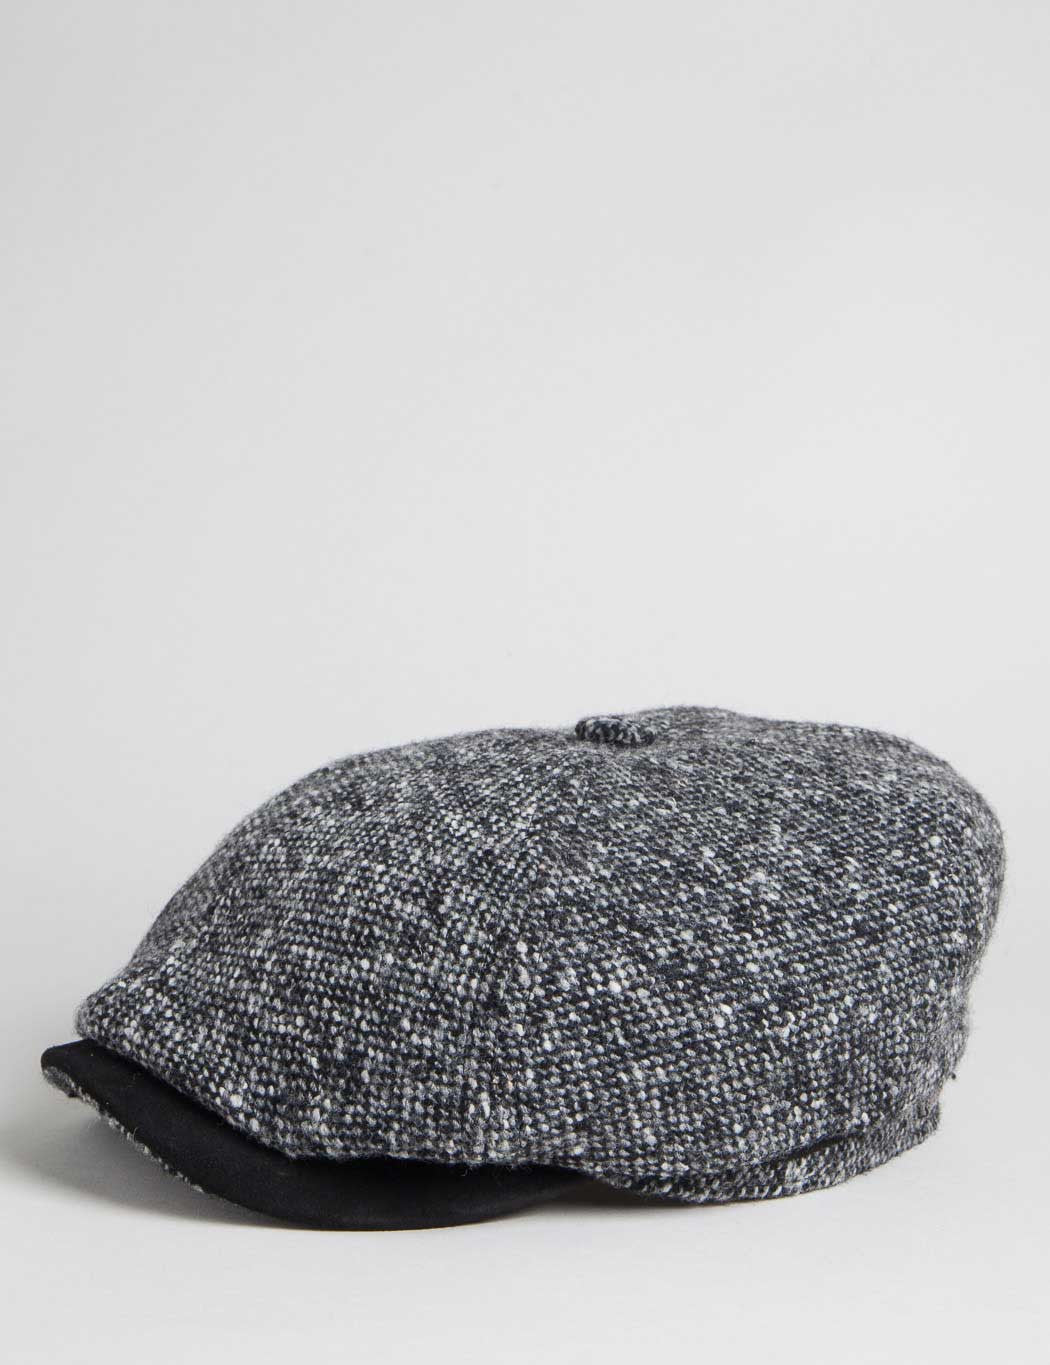 Stetson Brooklin Donegal Newsboy Cap - Black/Grey